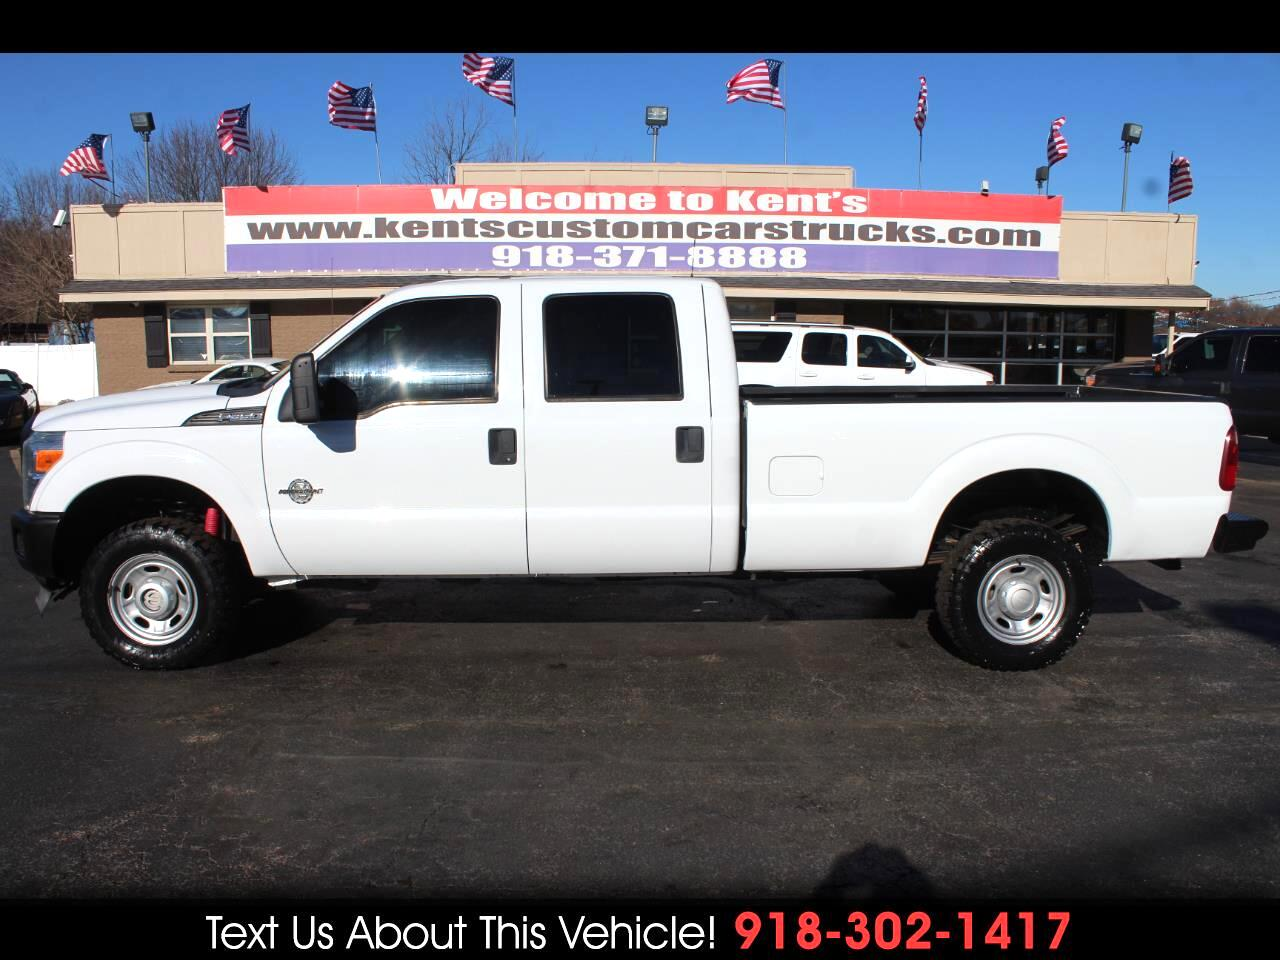 2012 Ford F-350 SD XL Crew Cab FX4 4WD SRW Long Bed